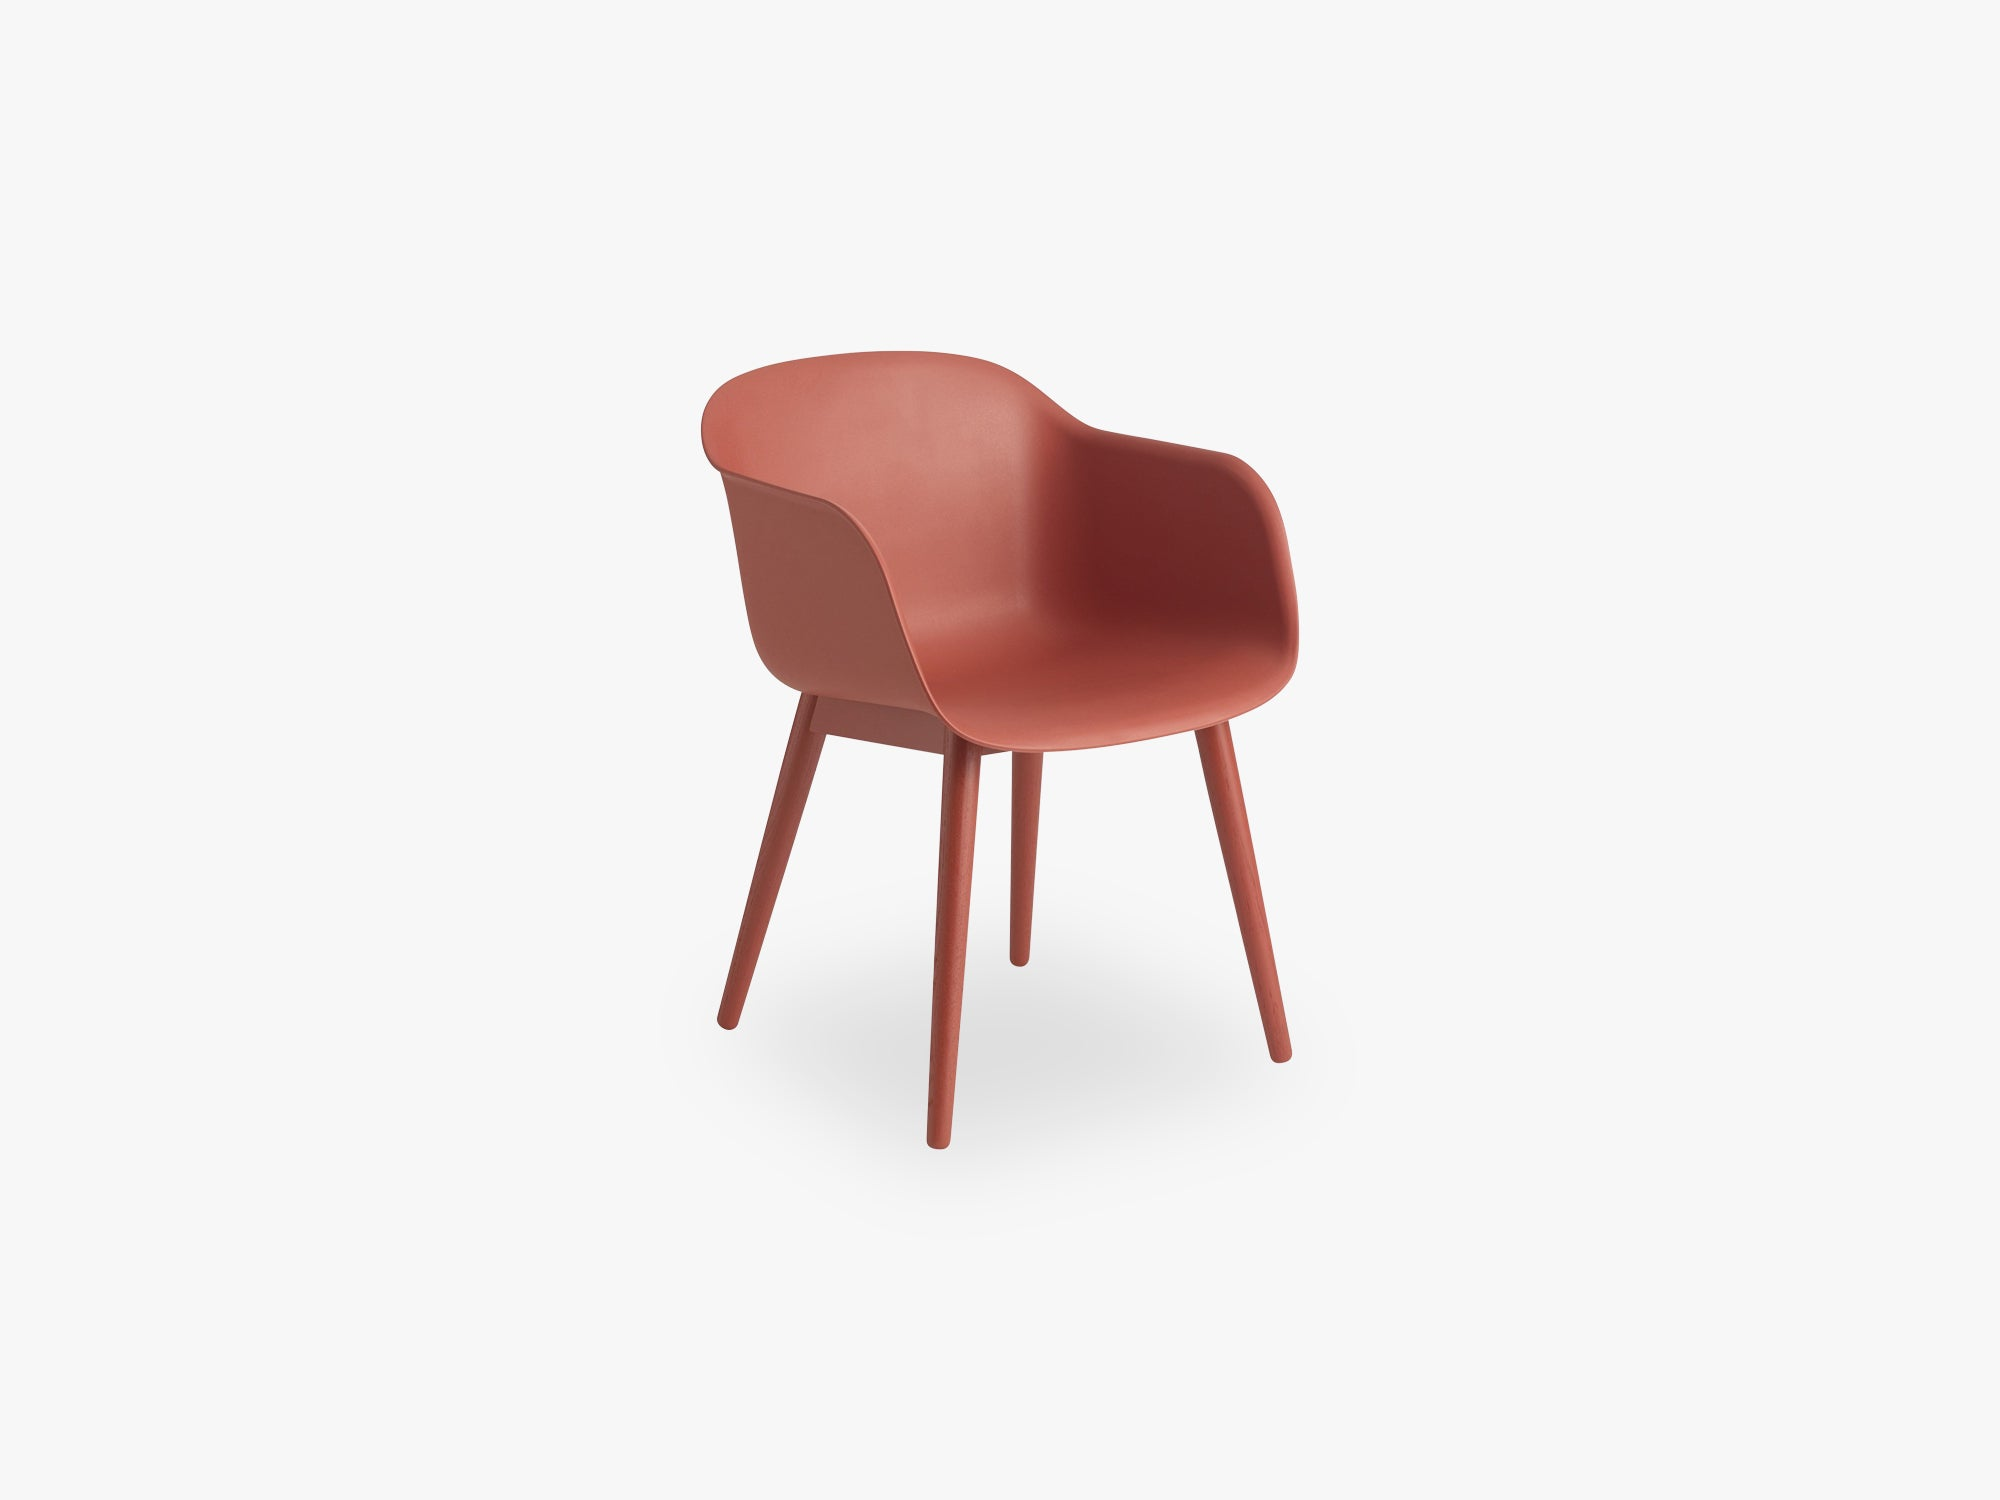 Fiber Armchair - Wood Base - Normal Shell, Dusty Red/Dusty Red fra Muuto